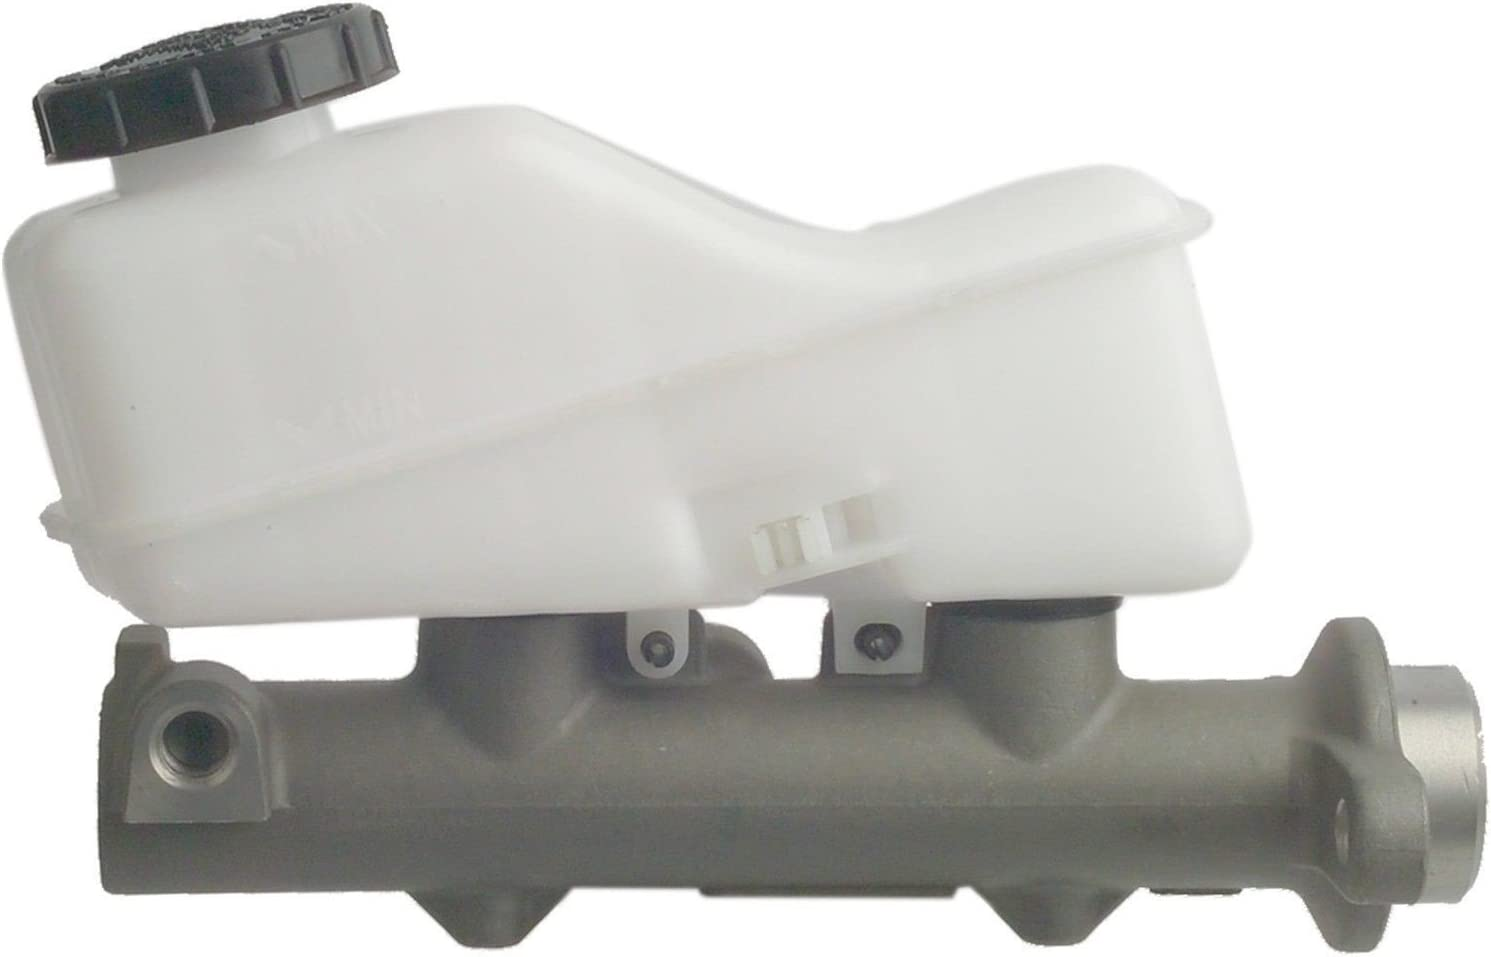 2005 Ford 500 with traction control NAMCCO Brake master cylinder Compatible with FORD 2004-2007 Taurus with ABS with traction control without Advance Track MC390813